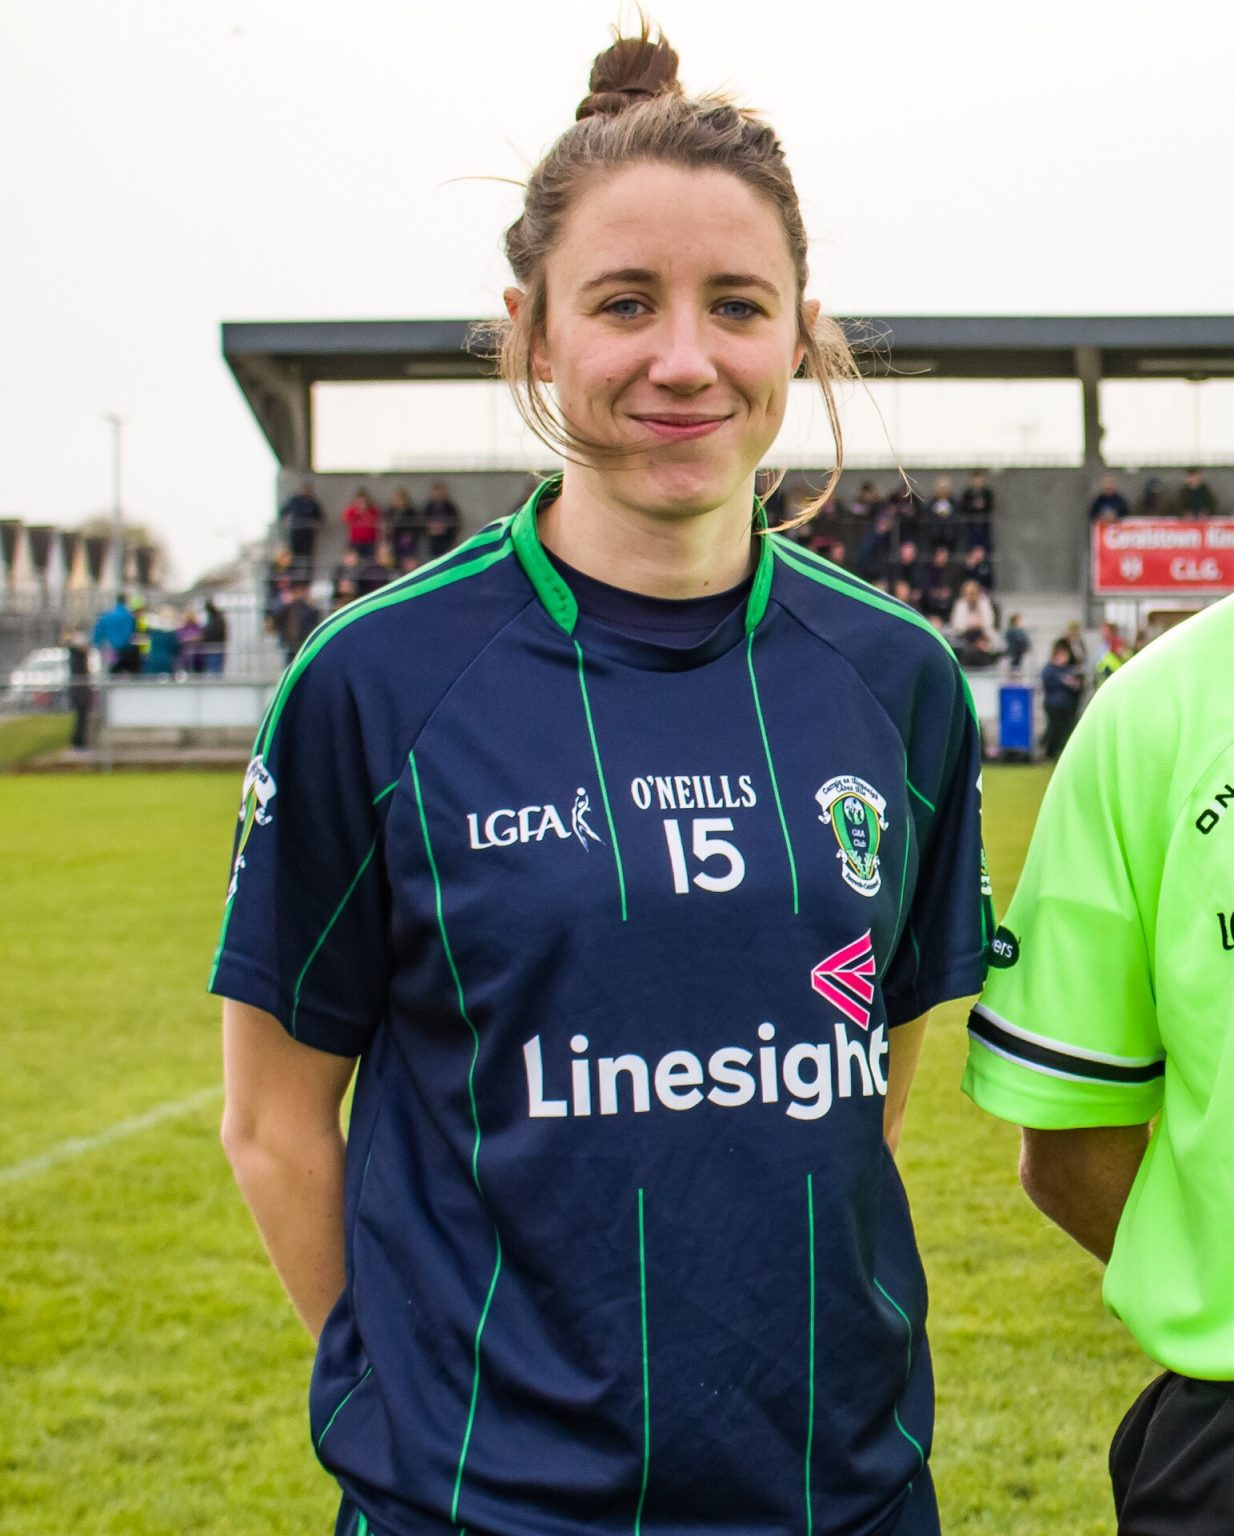 Foxrock Cabinteely Captain Amy Ring In a Navy Jersey with green pinstripes was forced to end her Dublin Career because of knee injury